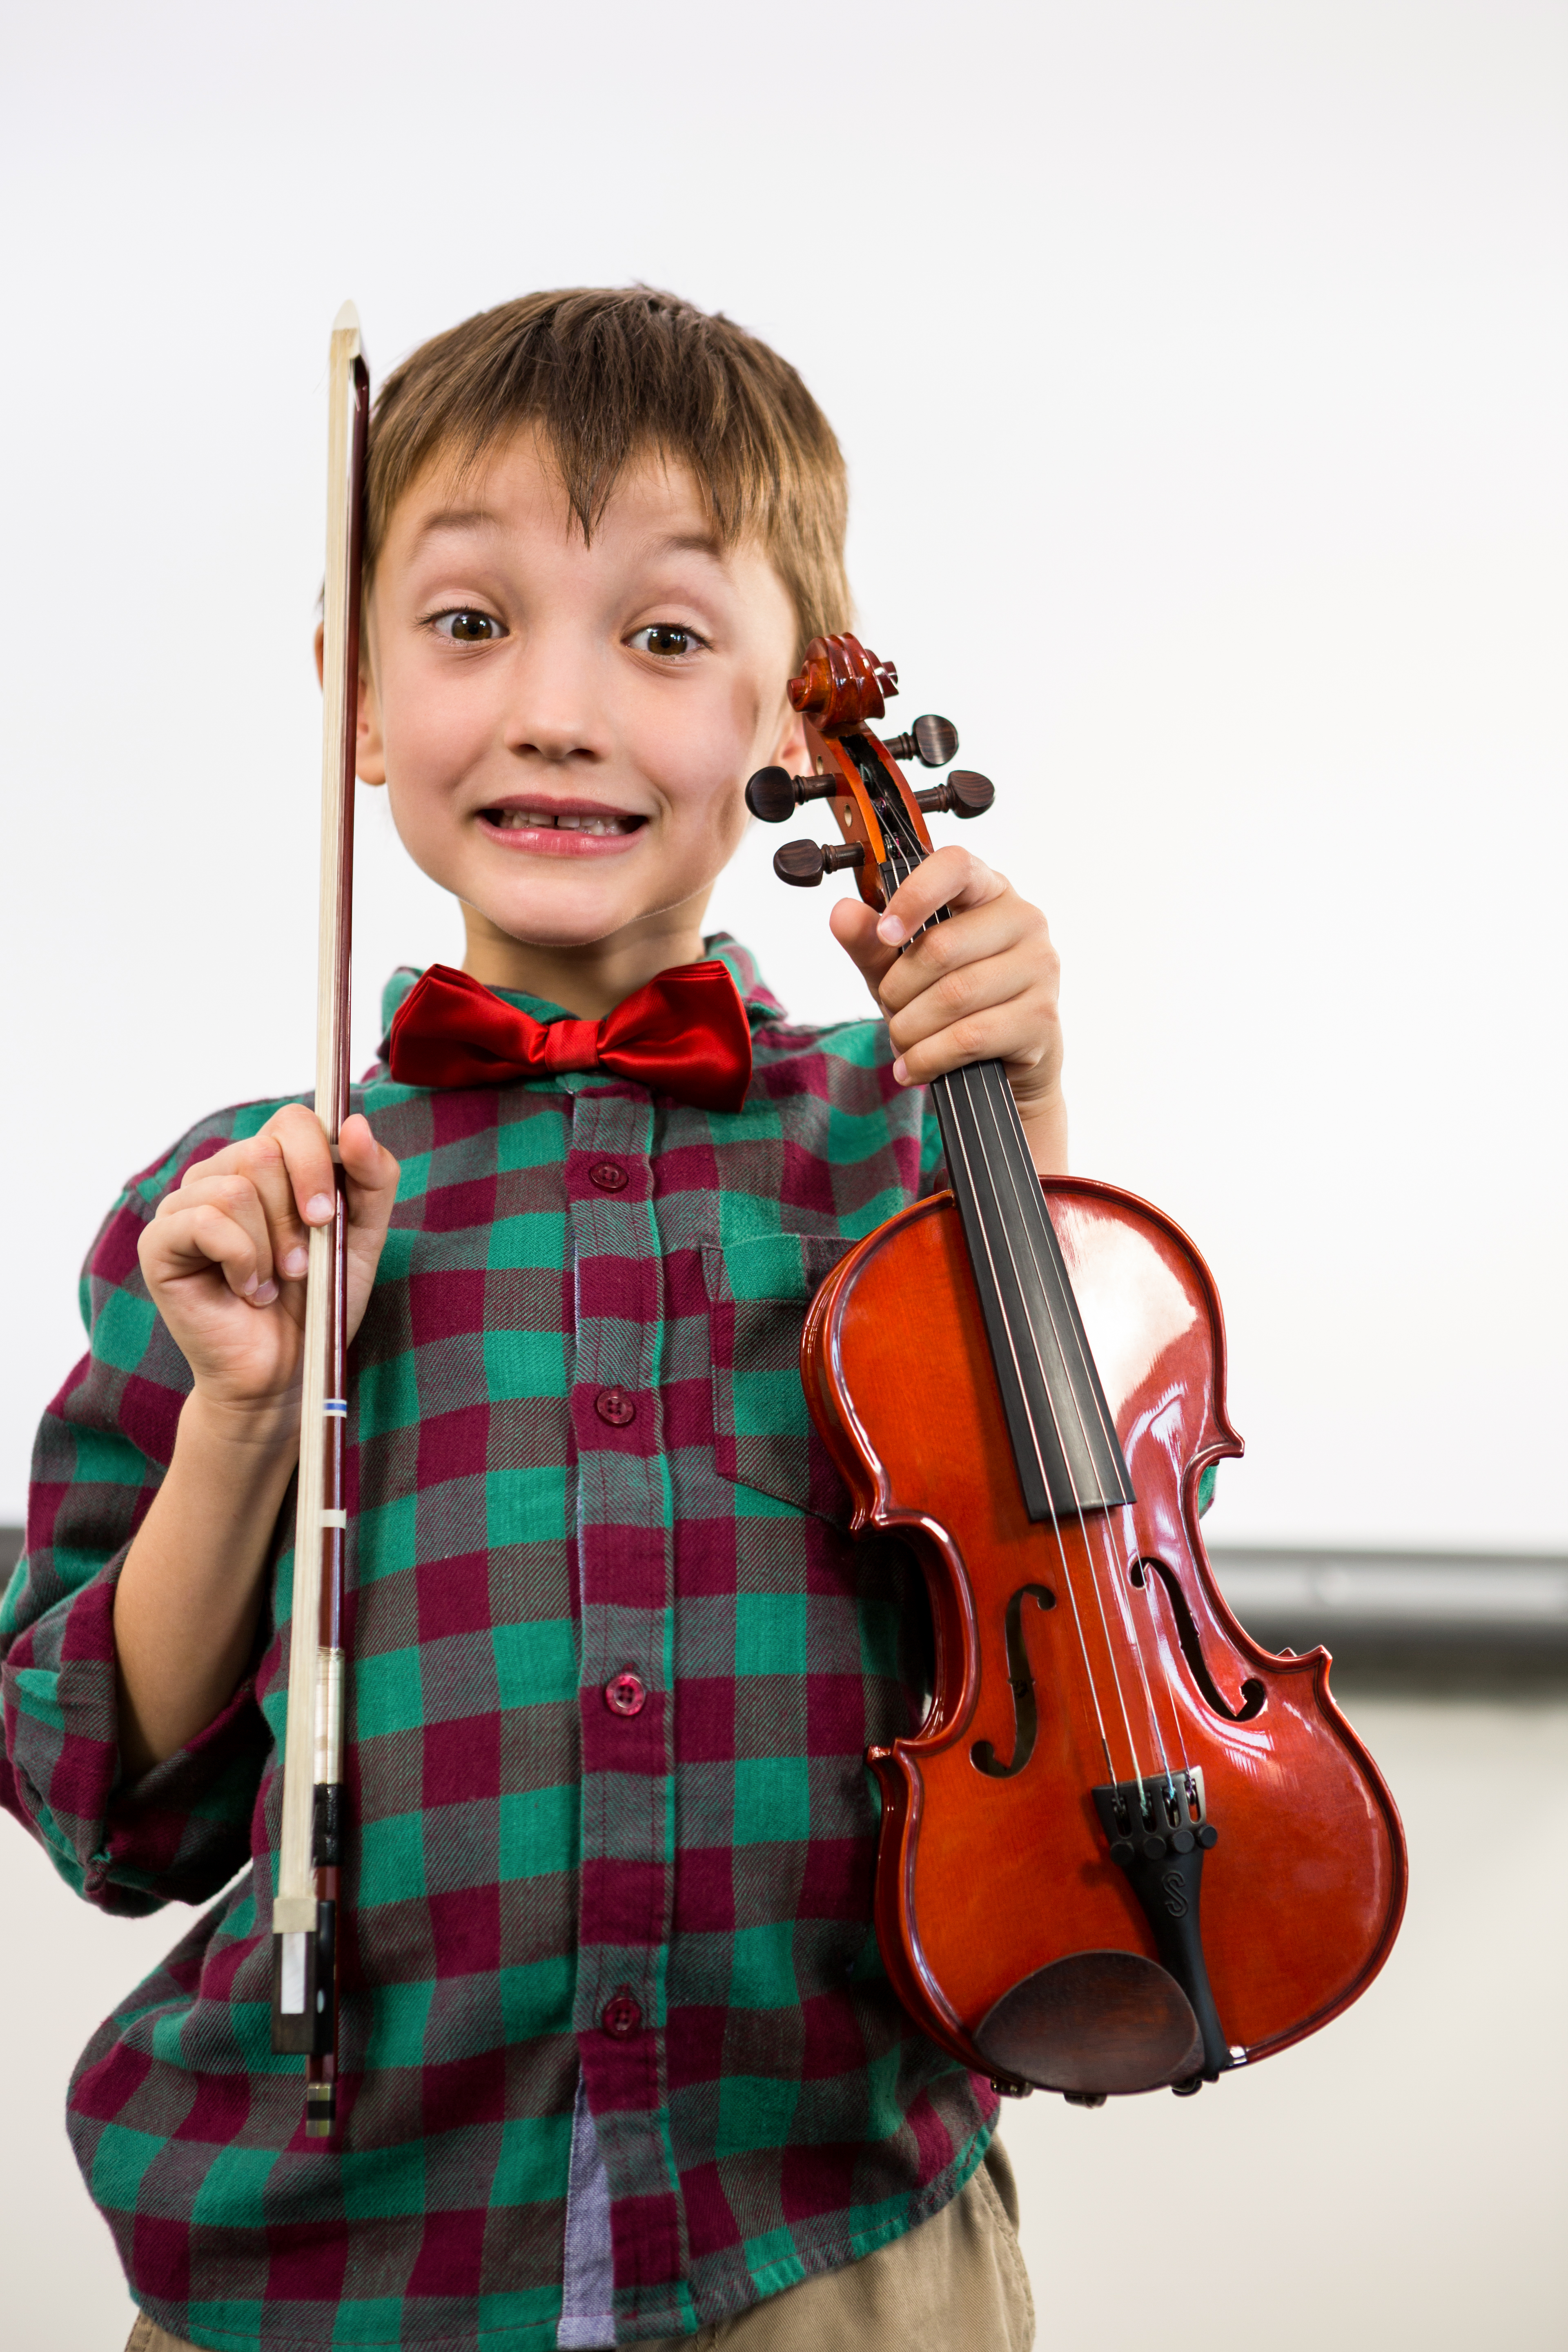 Portrait of cute boy holding violin with bow in classroom